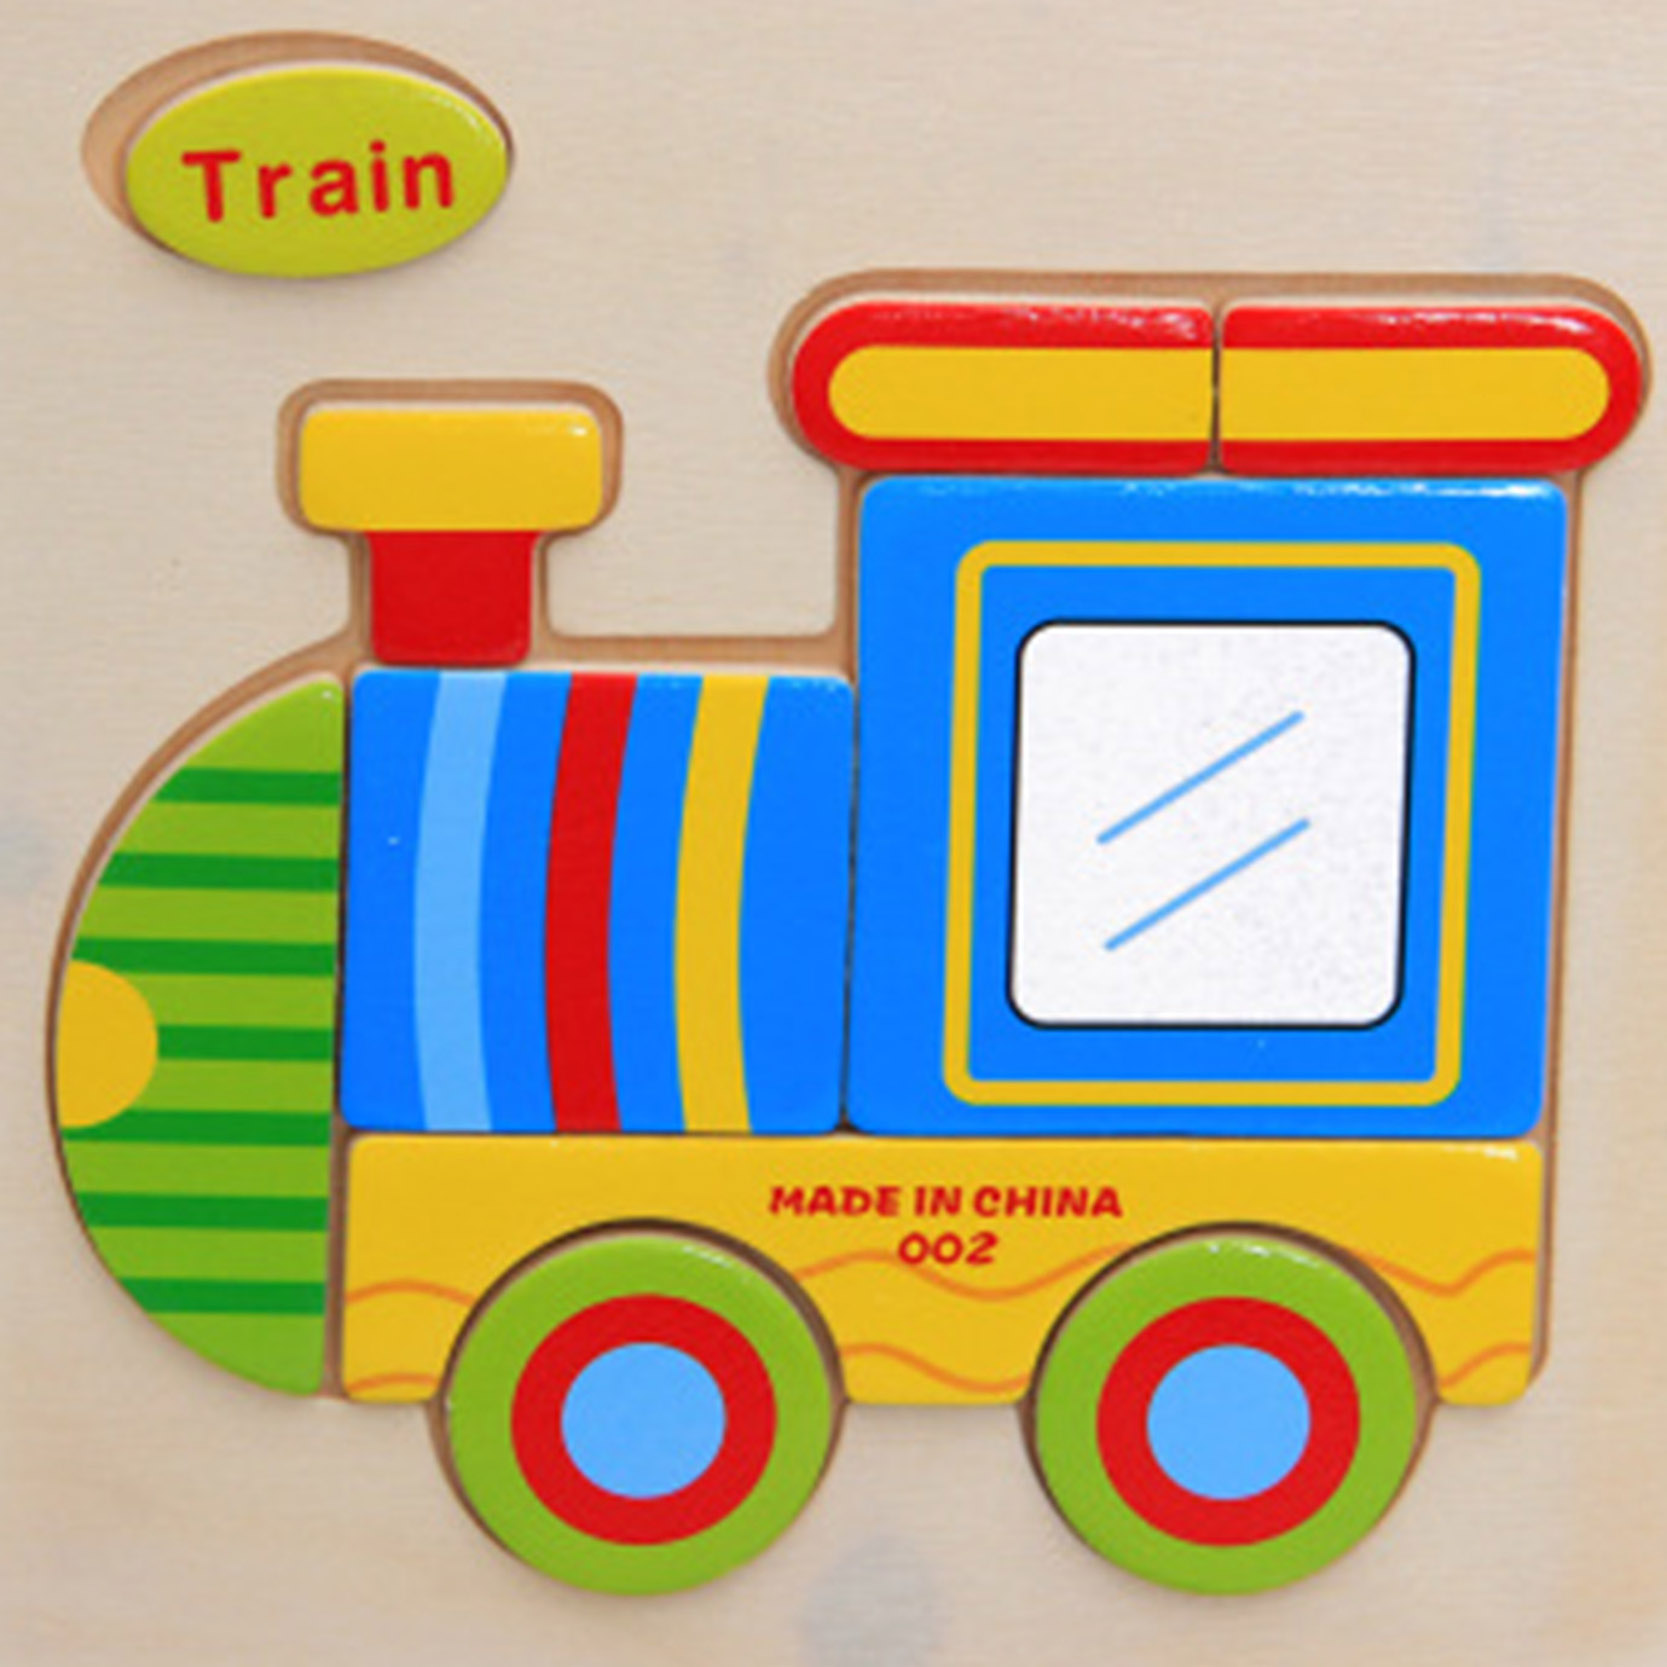 Toddler Toys Puzzle : Infant development educational puzzle toy gift for baby